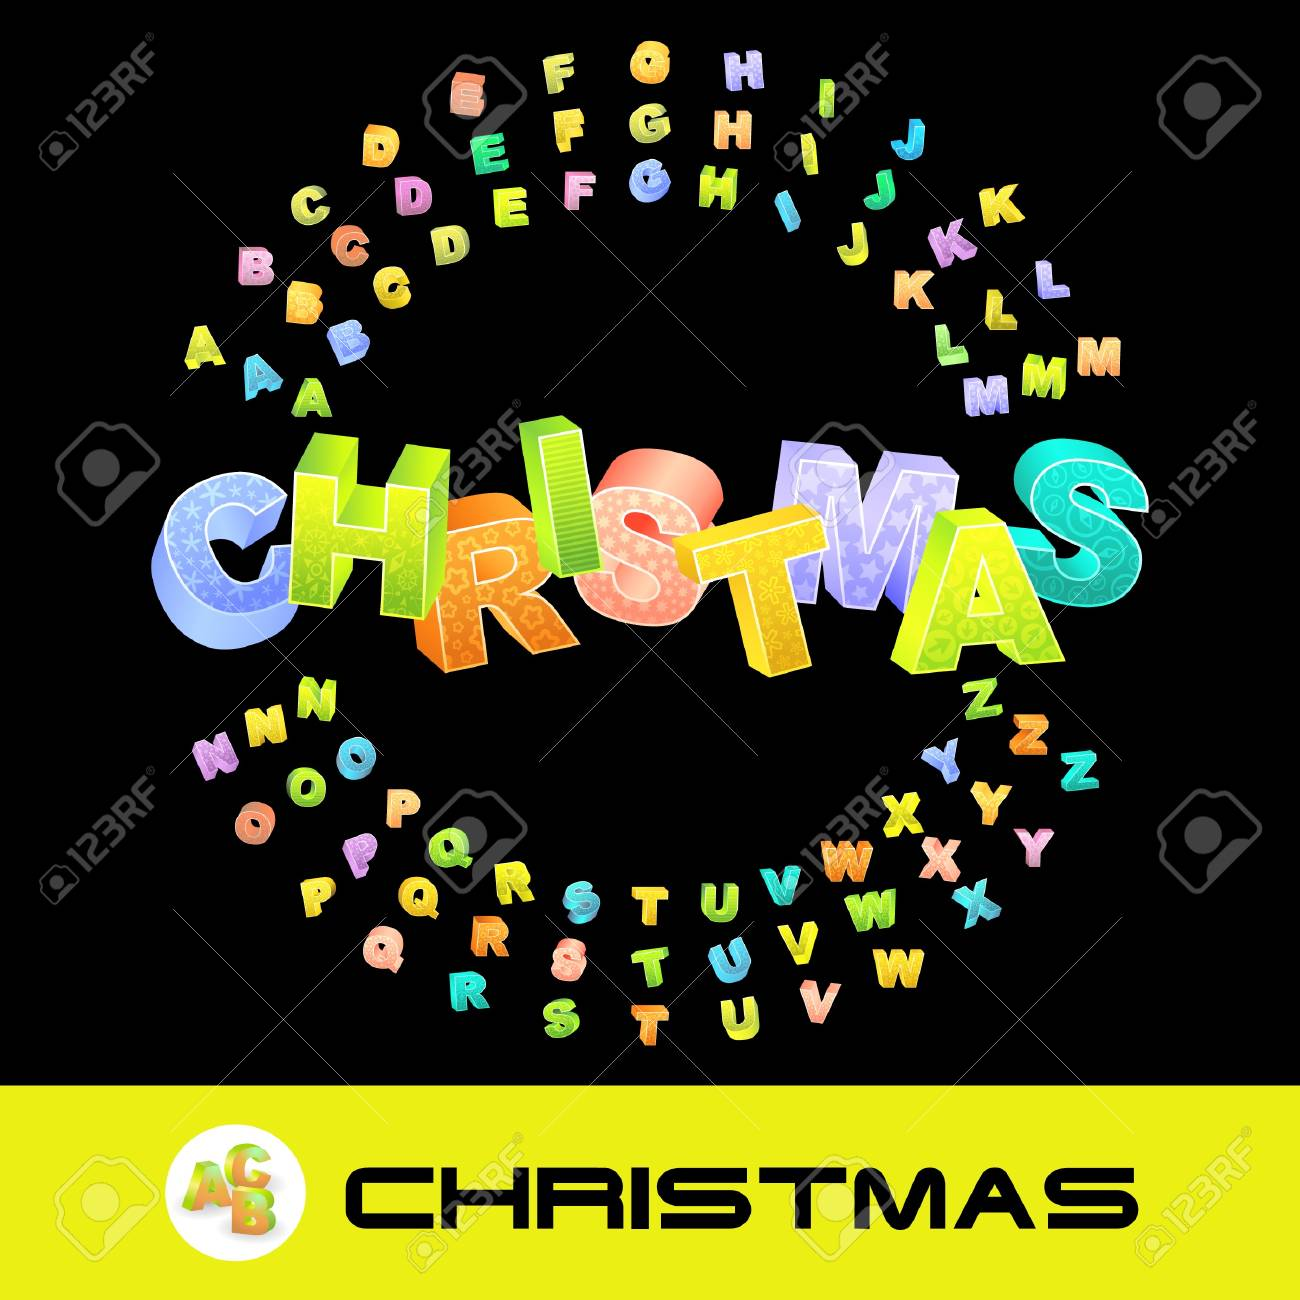 CHRISTMAS. Vector 3d illustration with colored alphabet. Stock Vector - 9021974